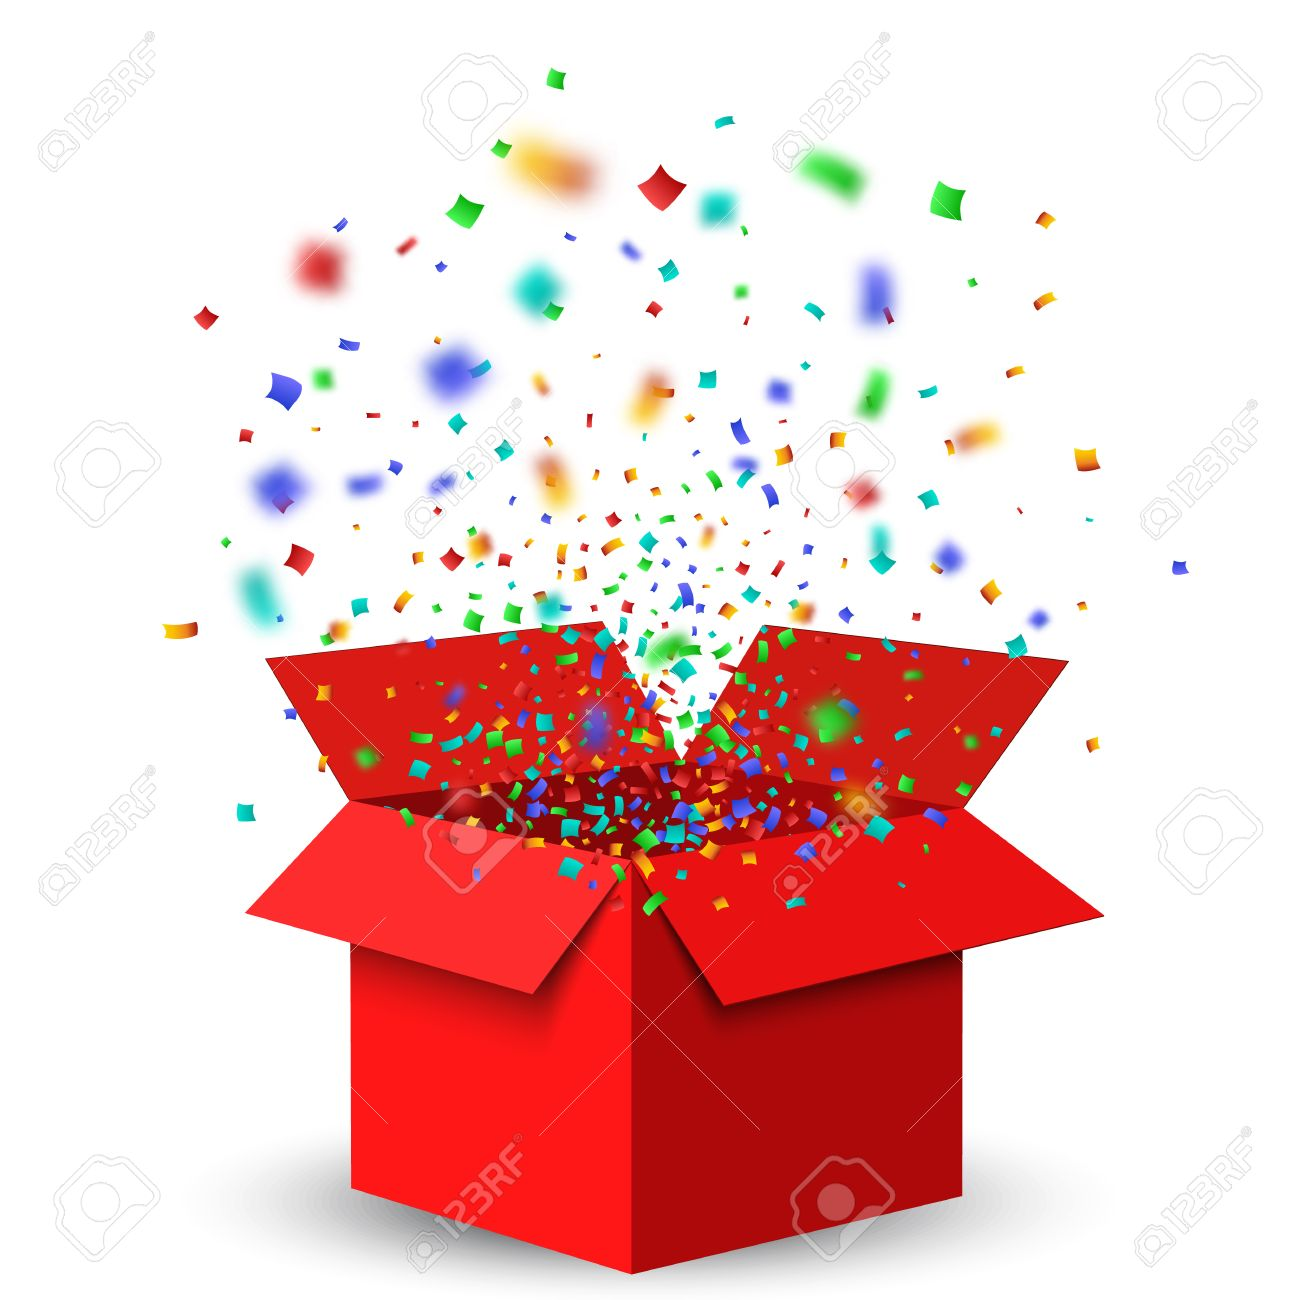 Open Red Gift Box and Confetti. Christmas Background. - 60315532